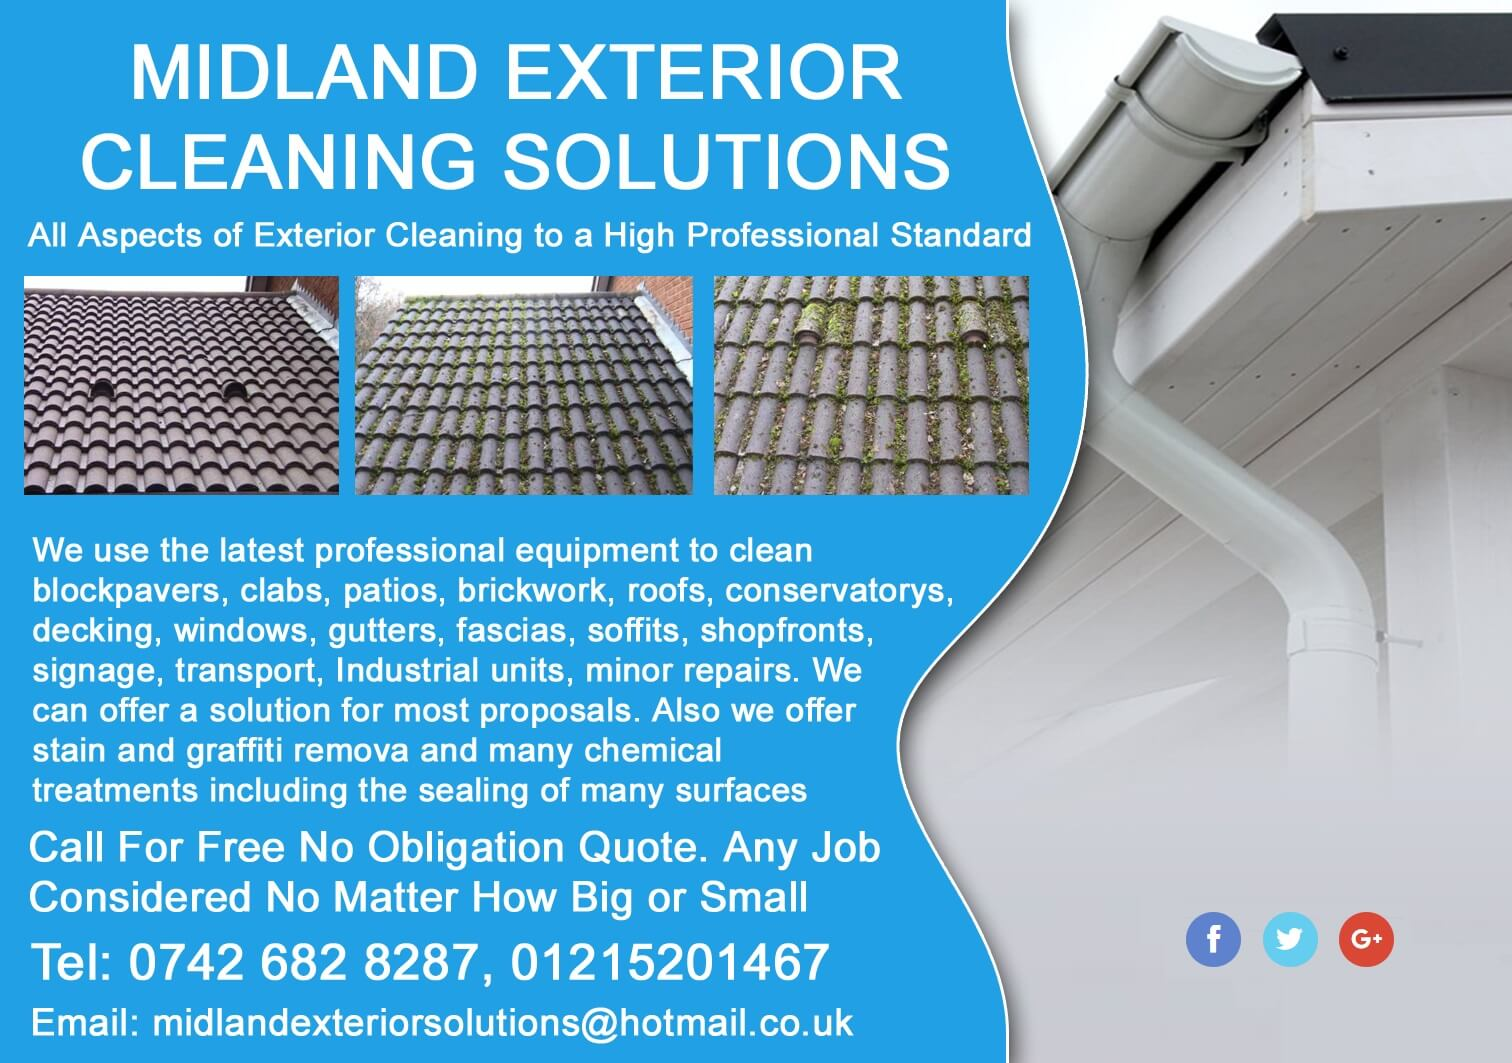 Midland Exterior Cleaning Solutions Singh Xpress Directory